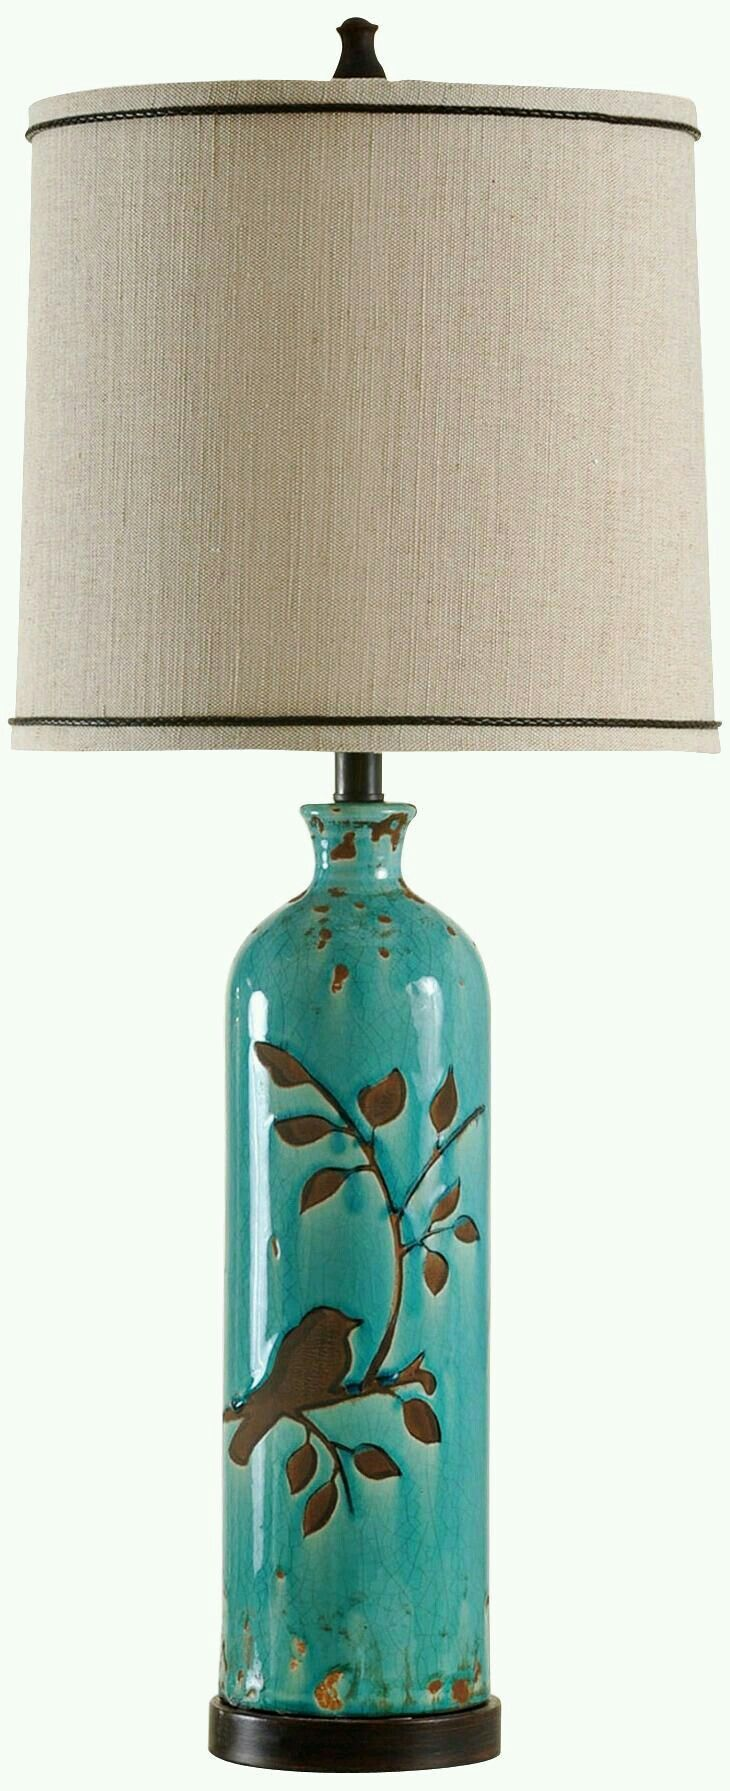 tqs index set turquoise of sp accessories glass lamp products lamps detail table ellis turqoise